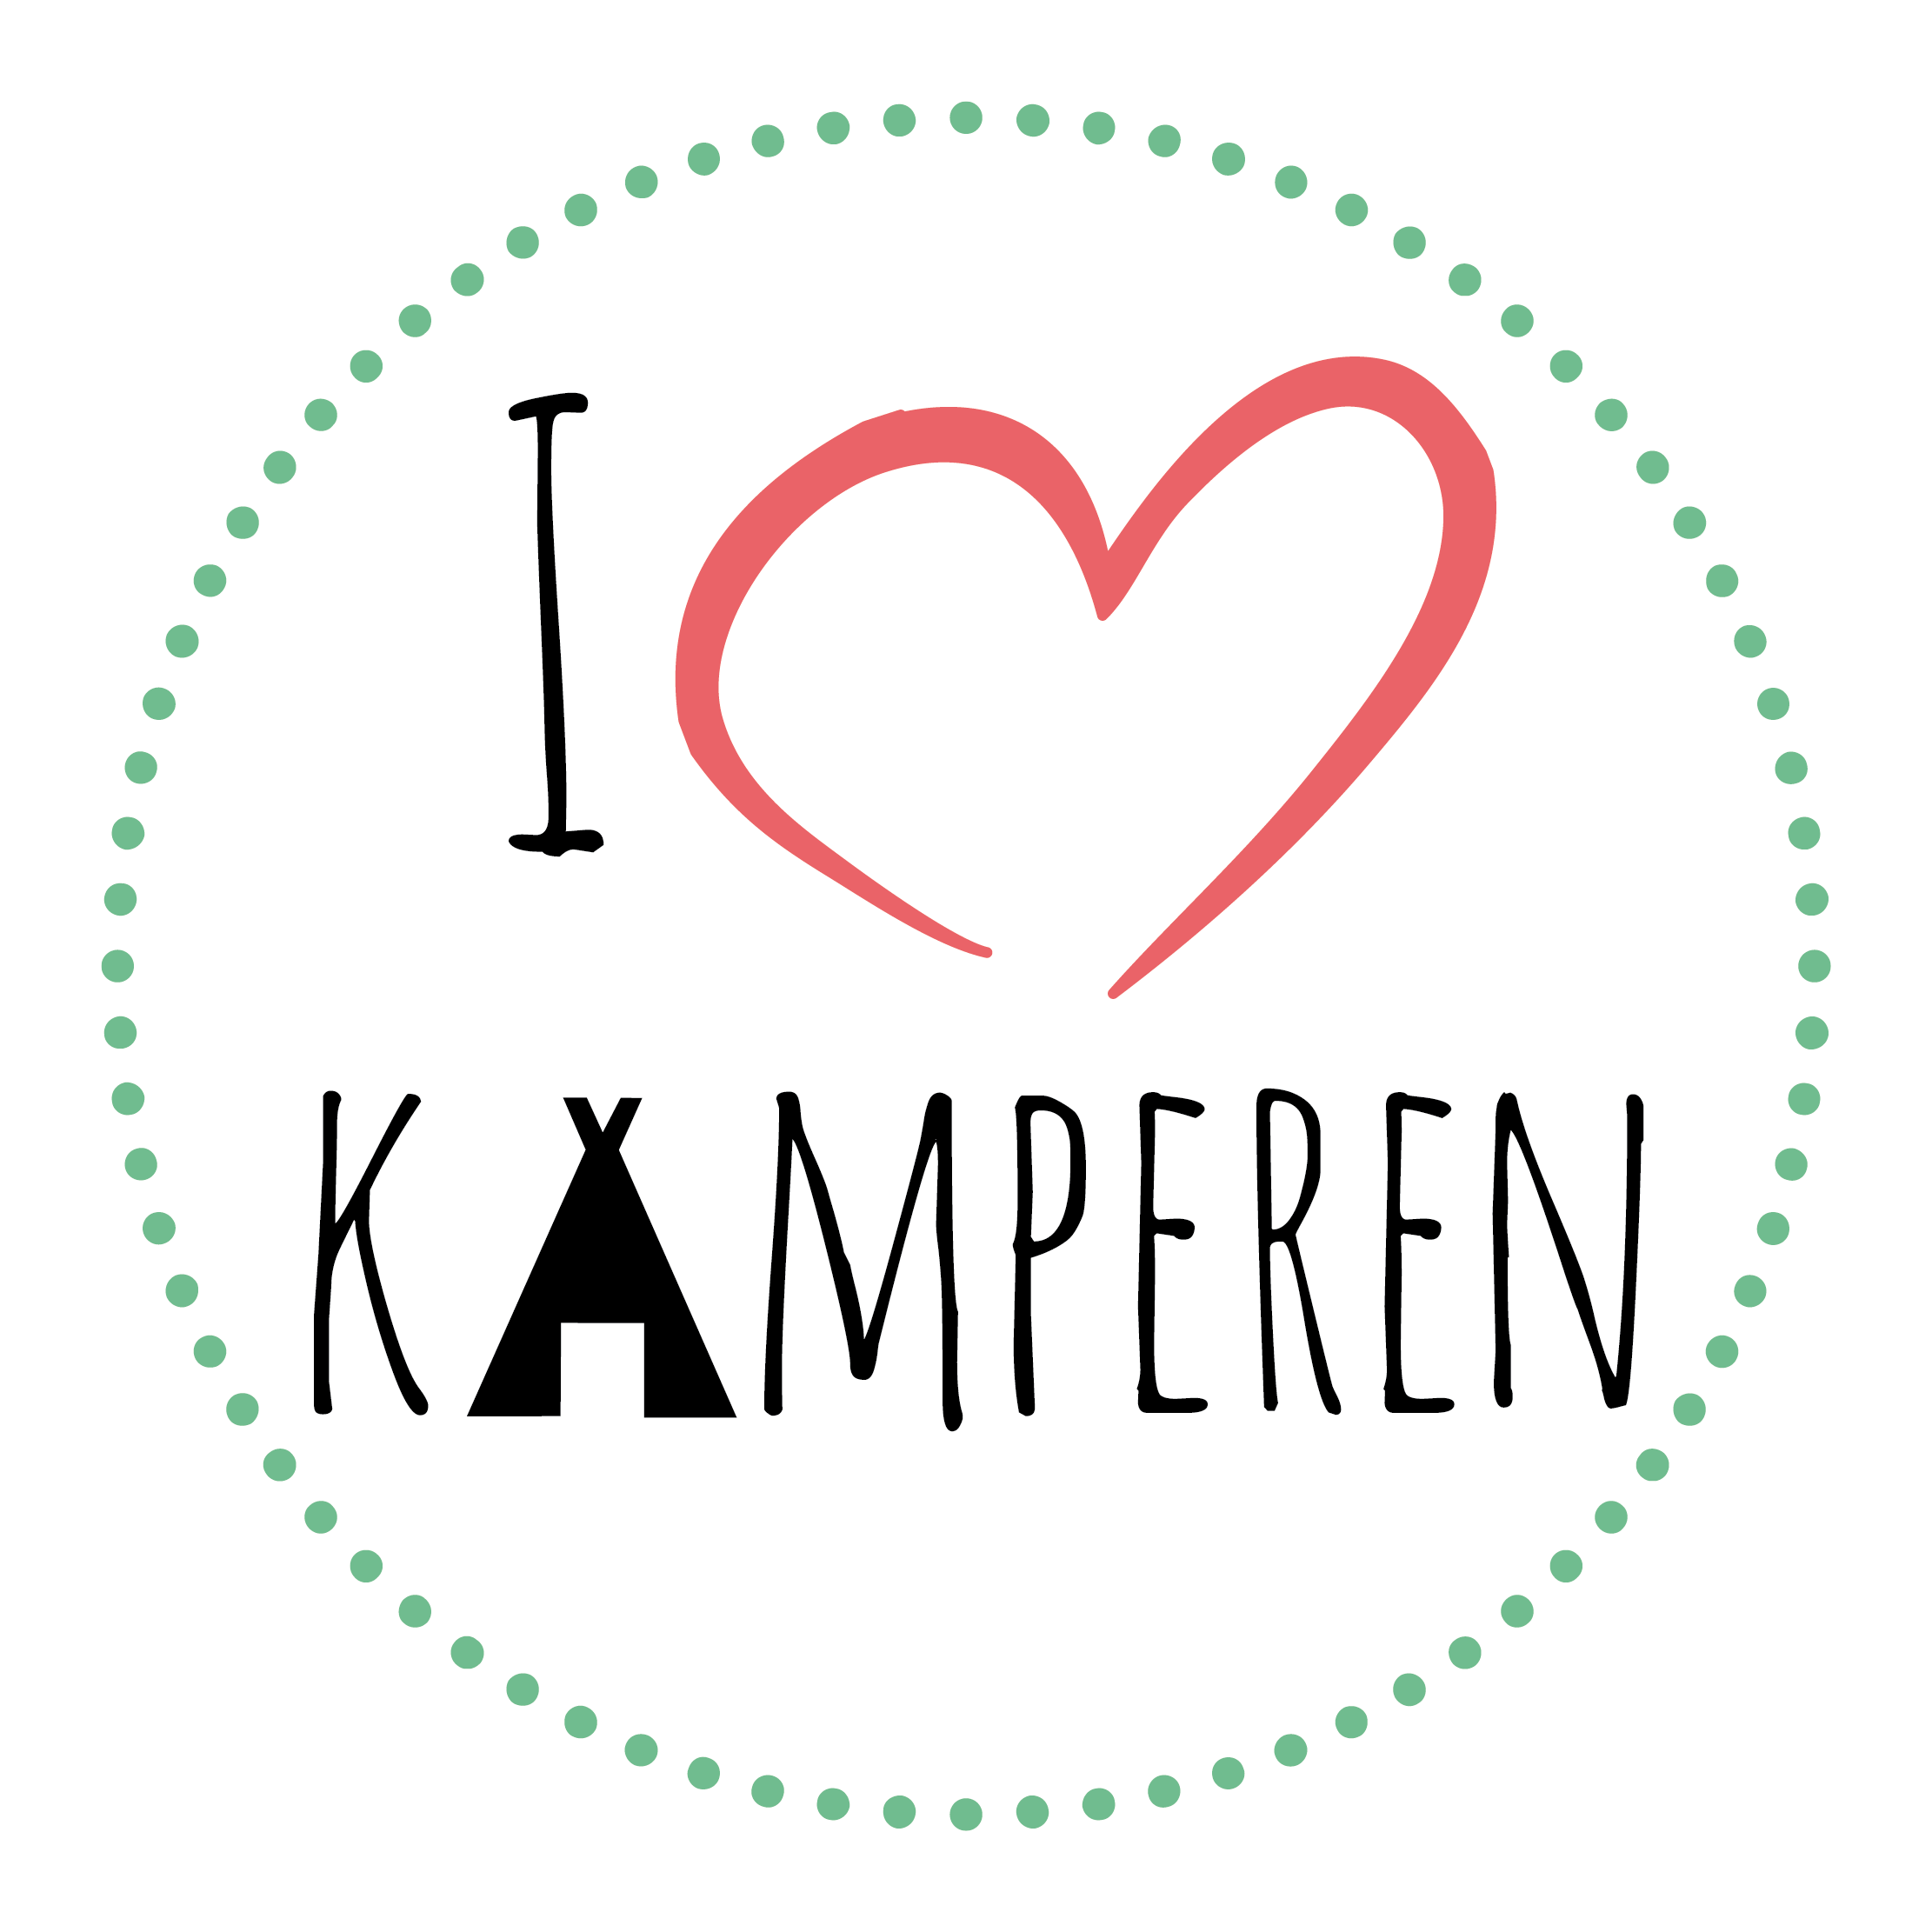 pagina Friends Ilovekamperen logo